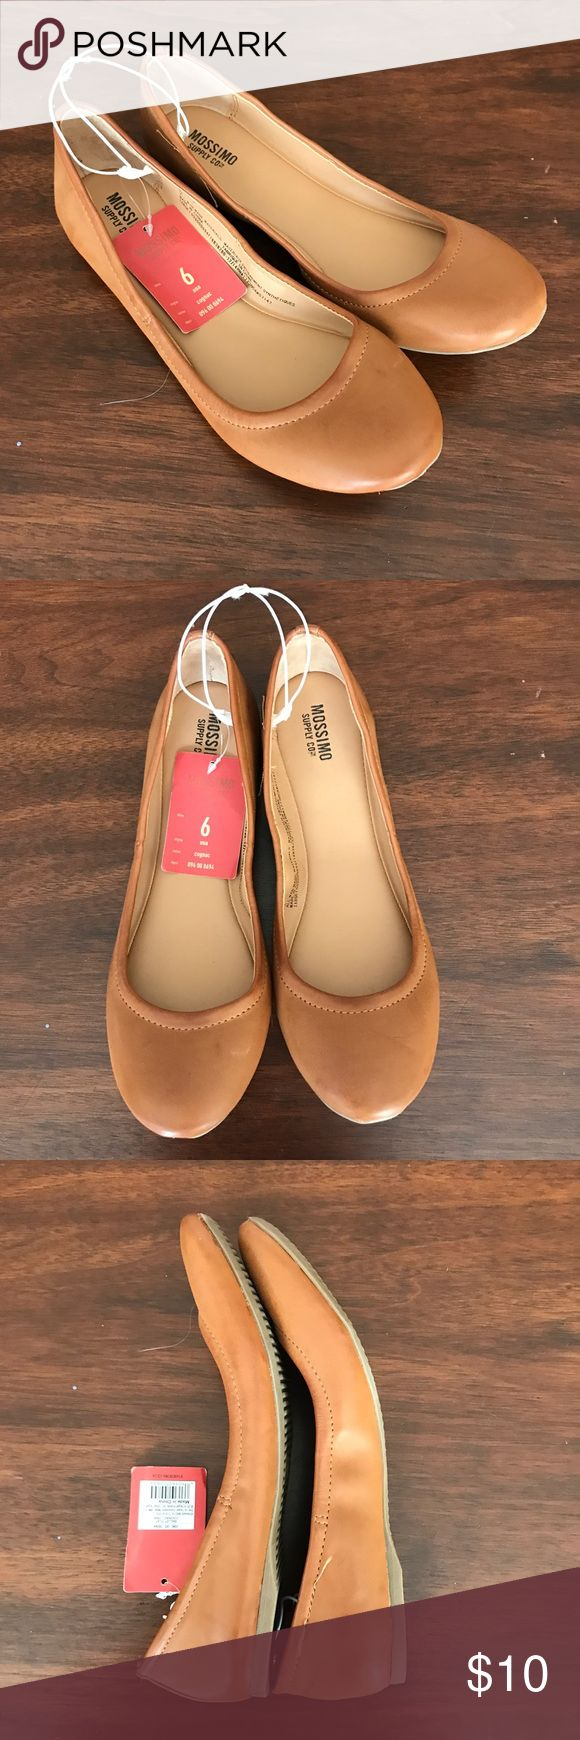 Mossimo saddle brown ballet flats These are saddle brown ballet flats. NWT! Size 6 No holds, trades, modeling Price firm #lilkittylady Mossimo Supply Co. Shoes Flats & Loafers